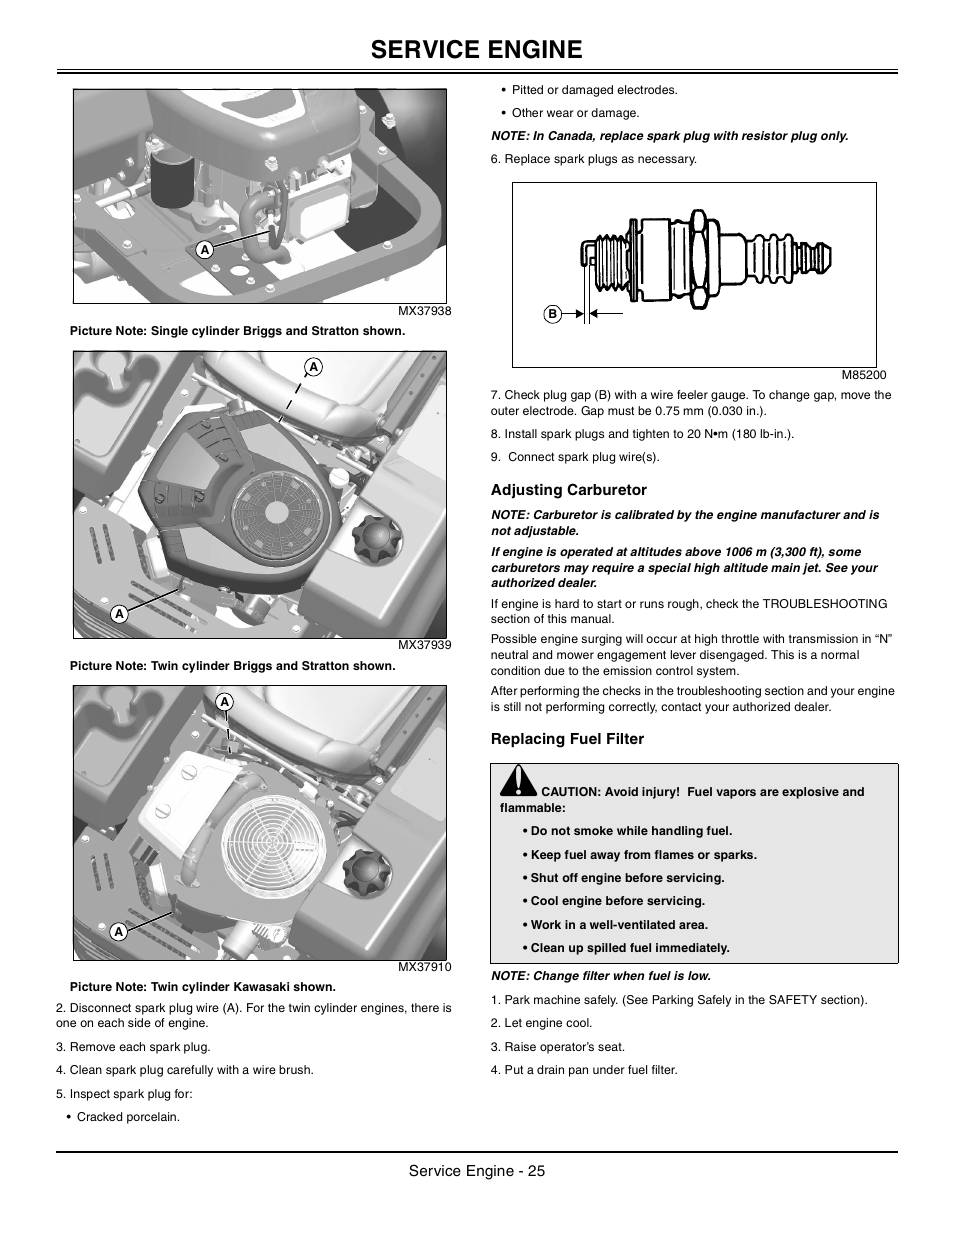 Adjusting carburetor, Replacing fuel filter, Service engine | John Deere  z425 User Manual | Page 26 / 48